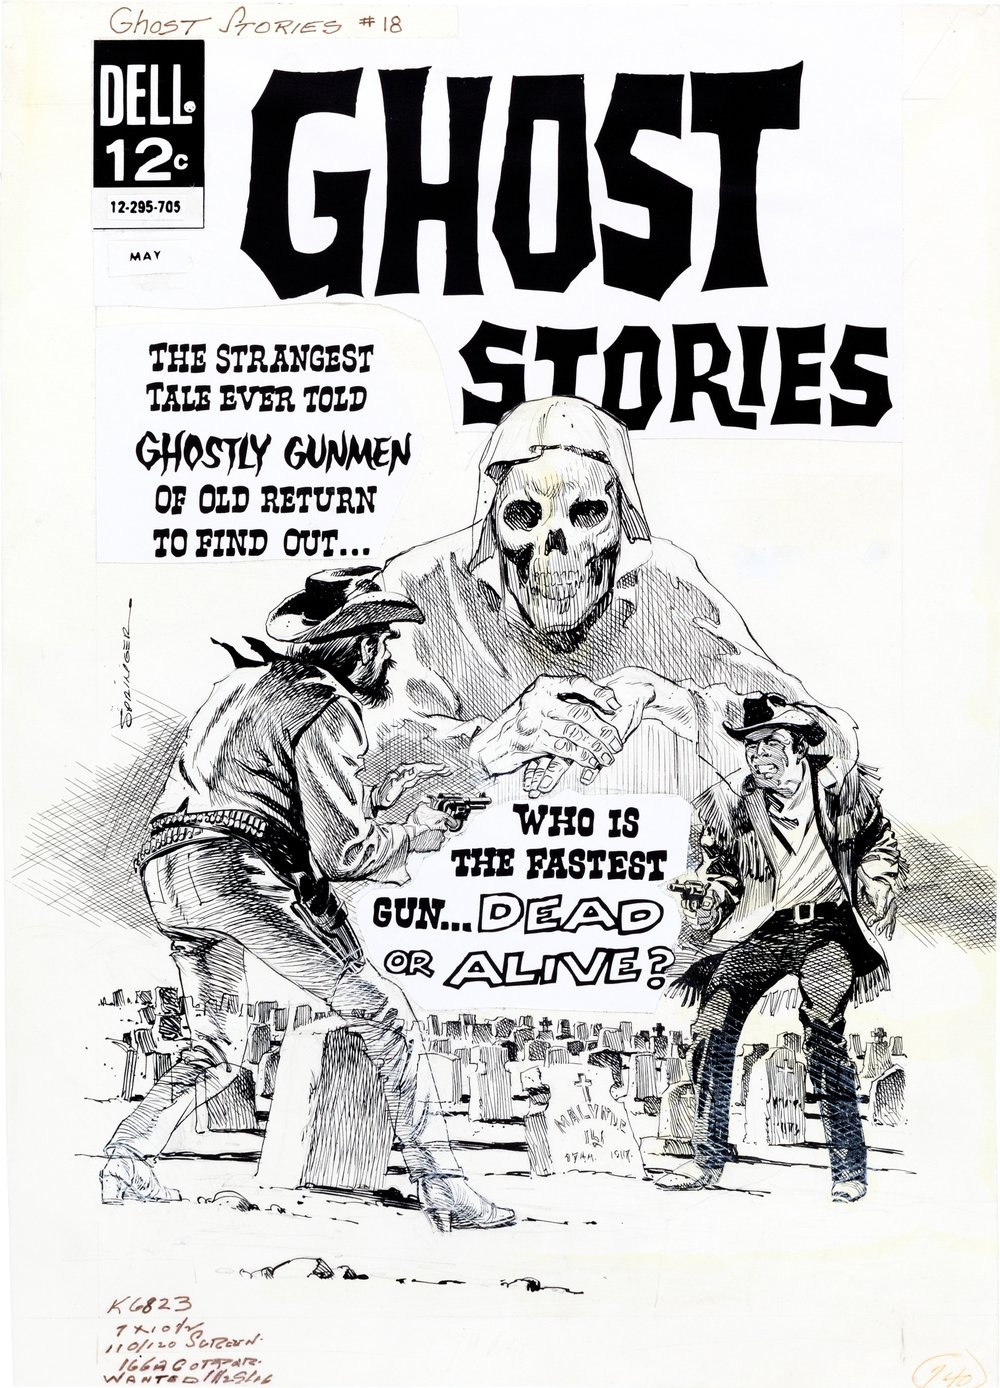 Ghost Stories (1962) #18, original cover art by Frank Springer.